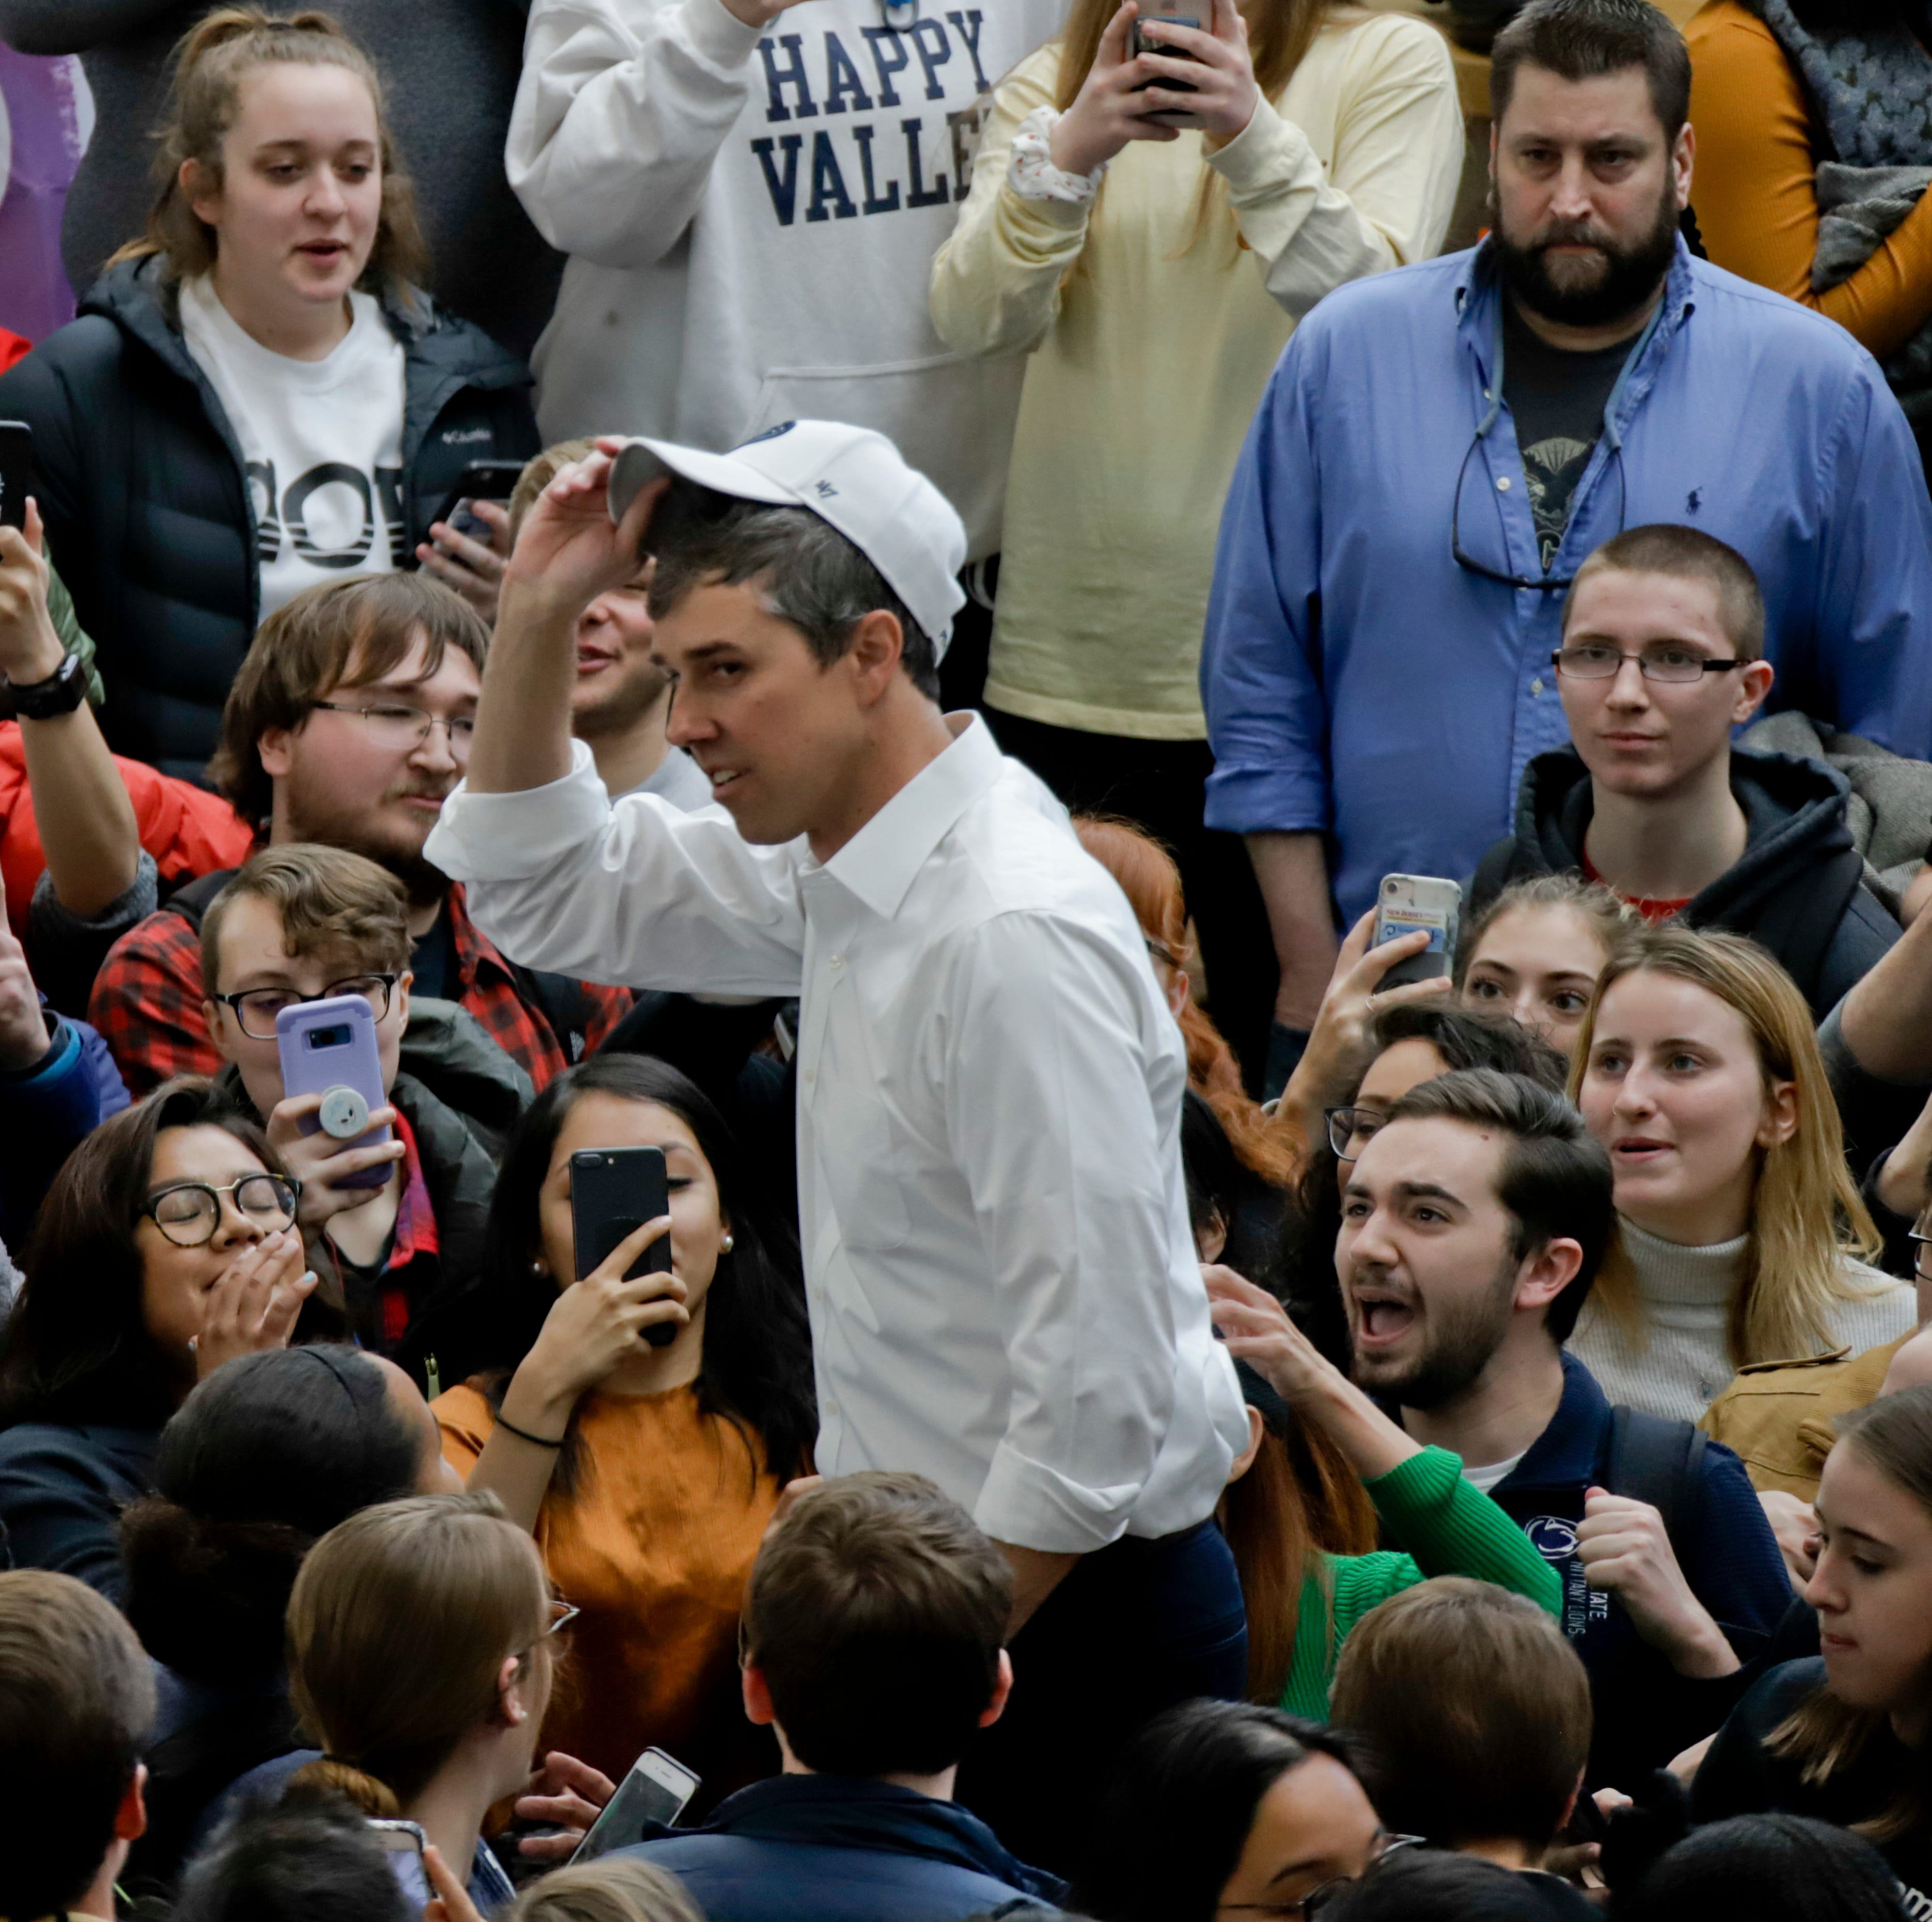 Beto campaign manager was aide to Barack Obama in 2012, signals shift in O'Rourke strategy